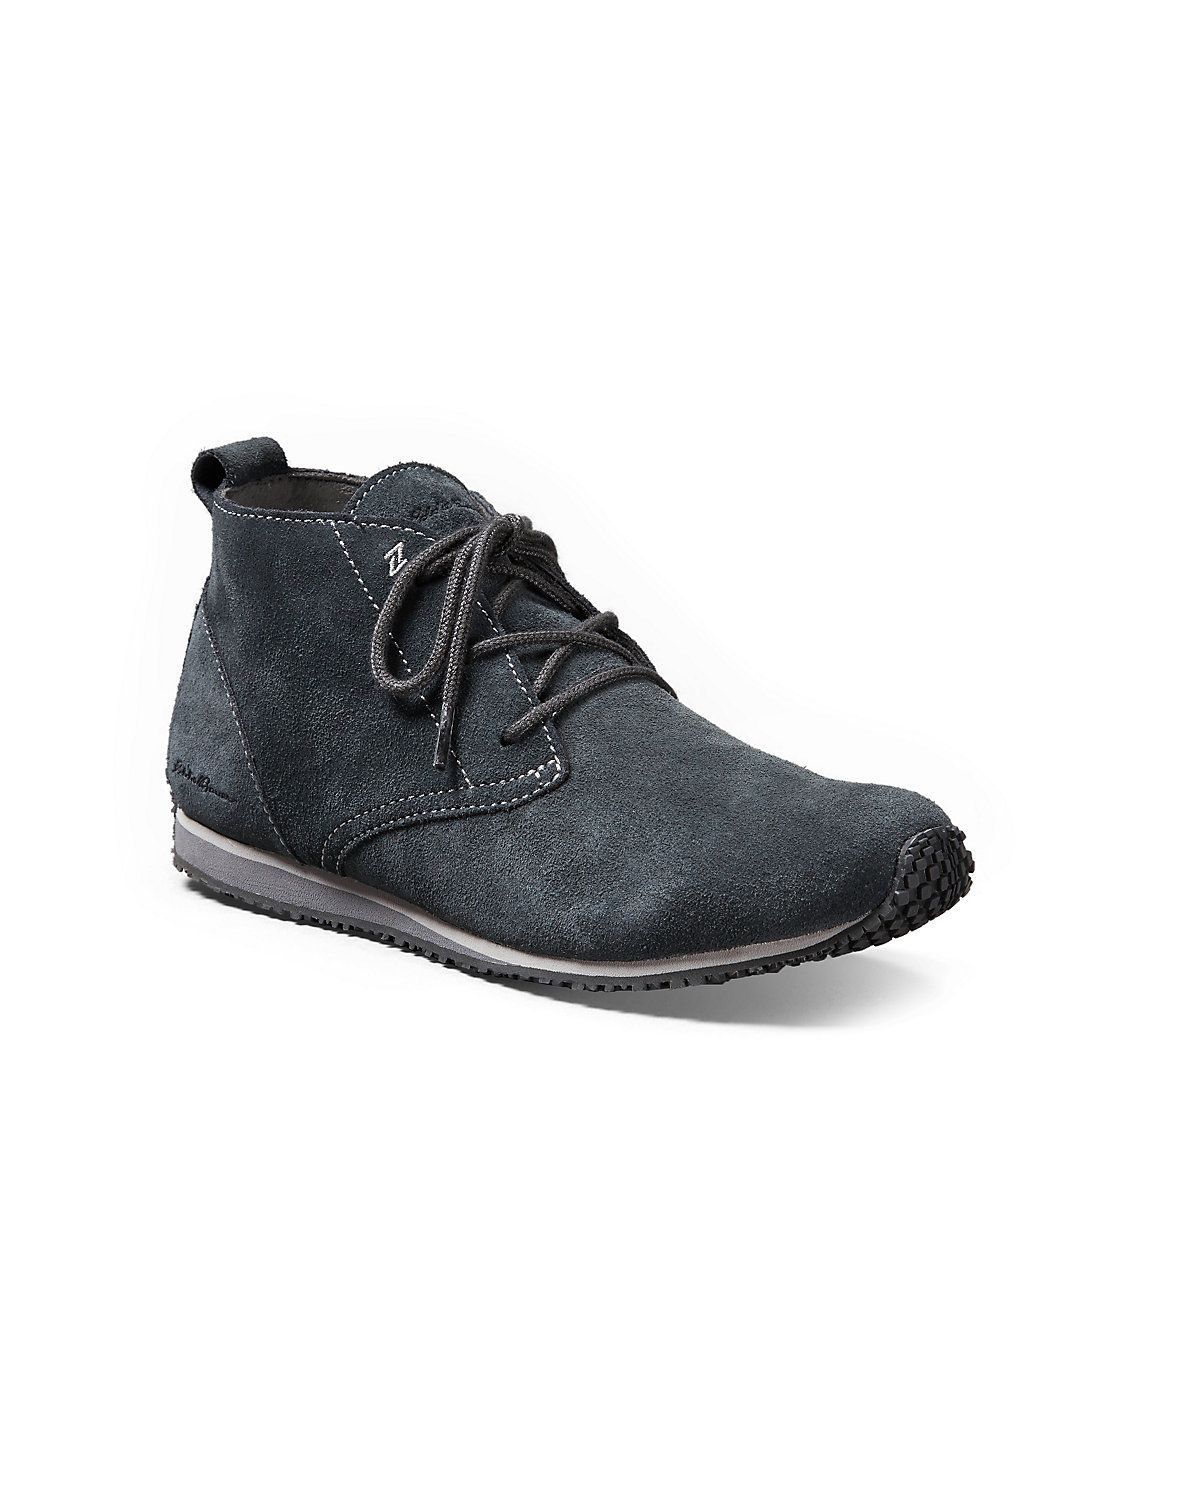 d416a2c3d2ee Women s Eddie Bauer Transition Chukka